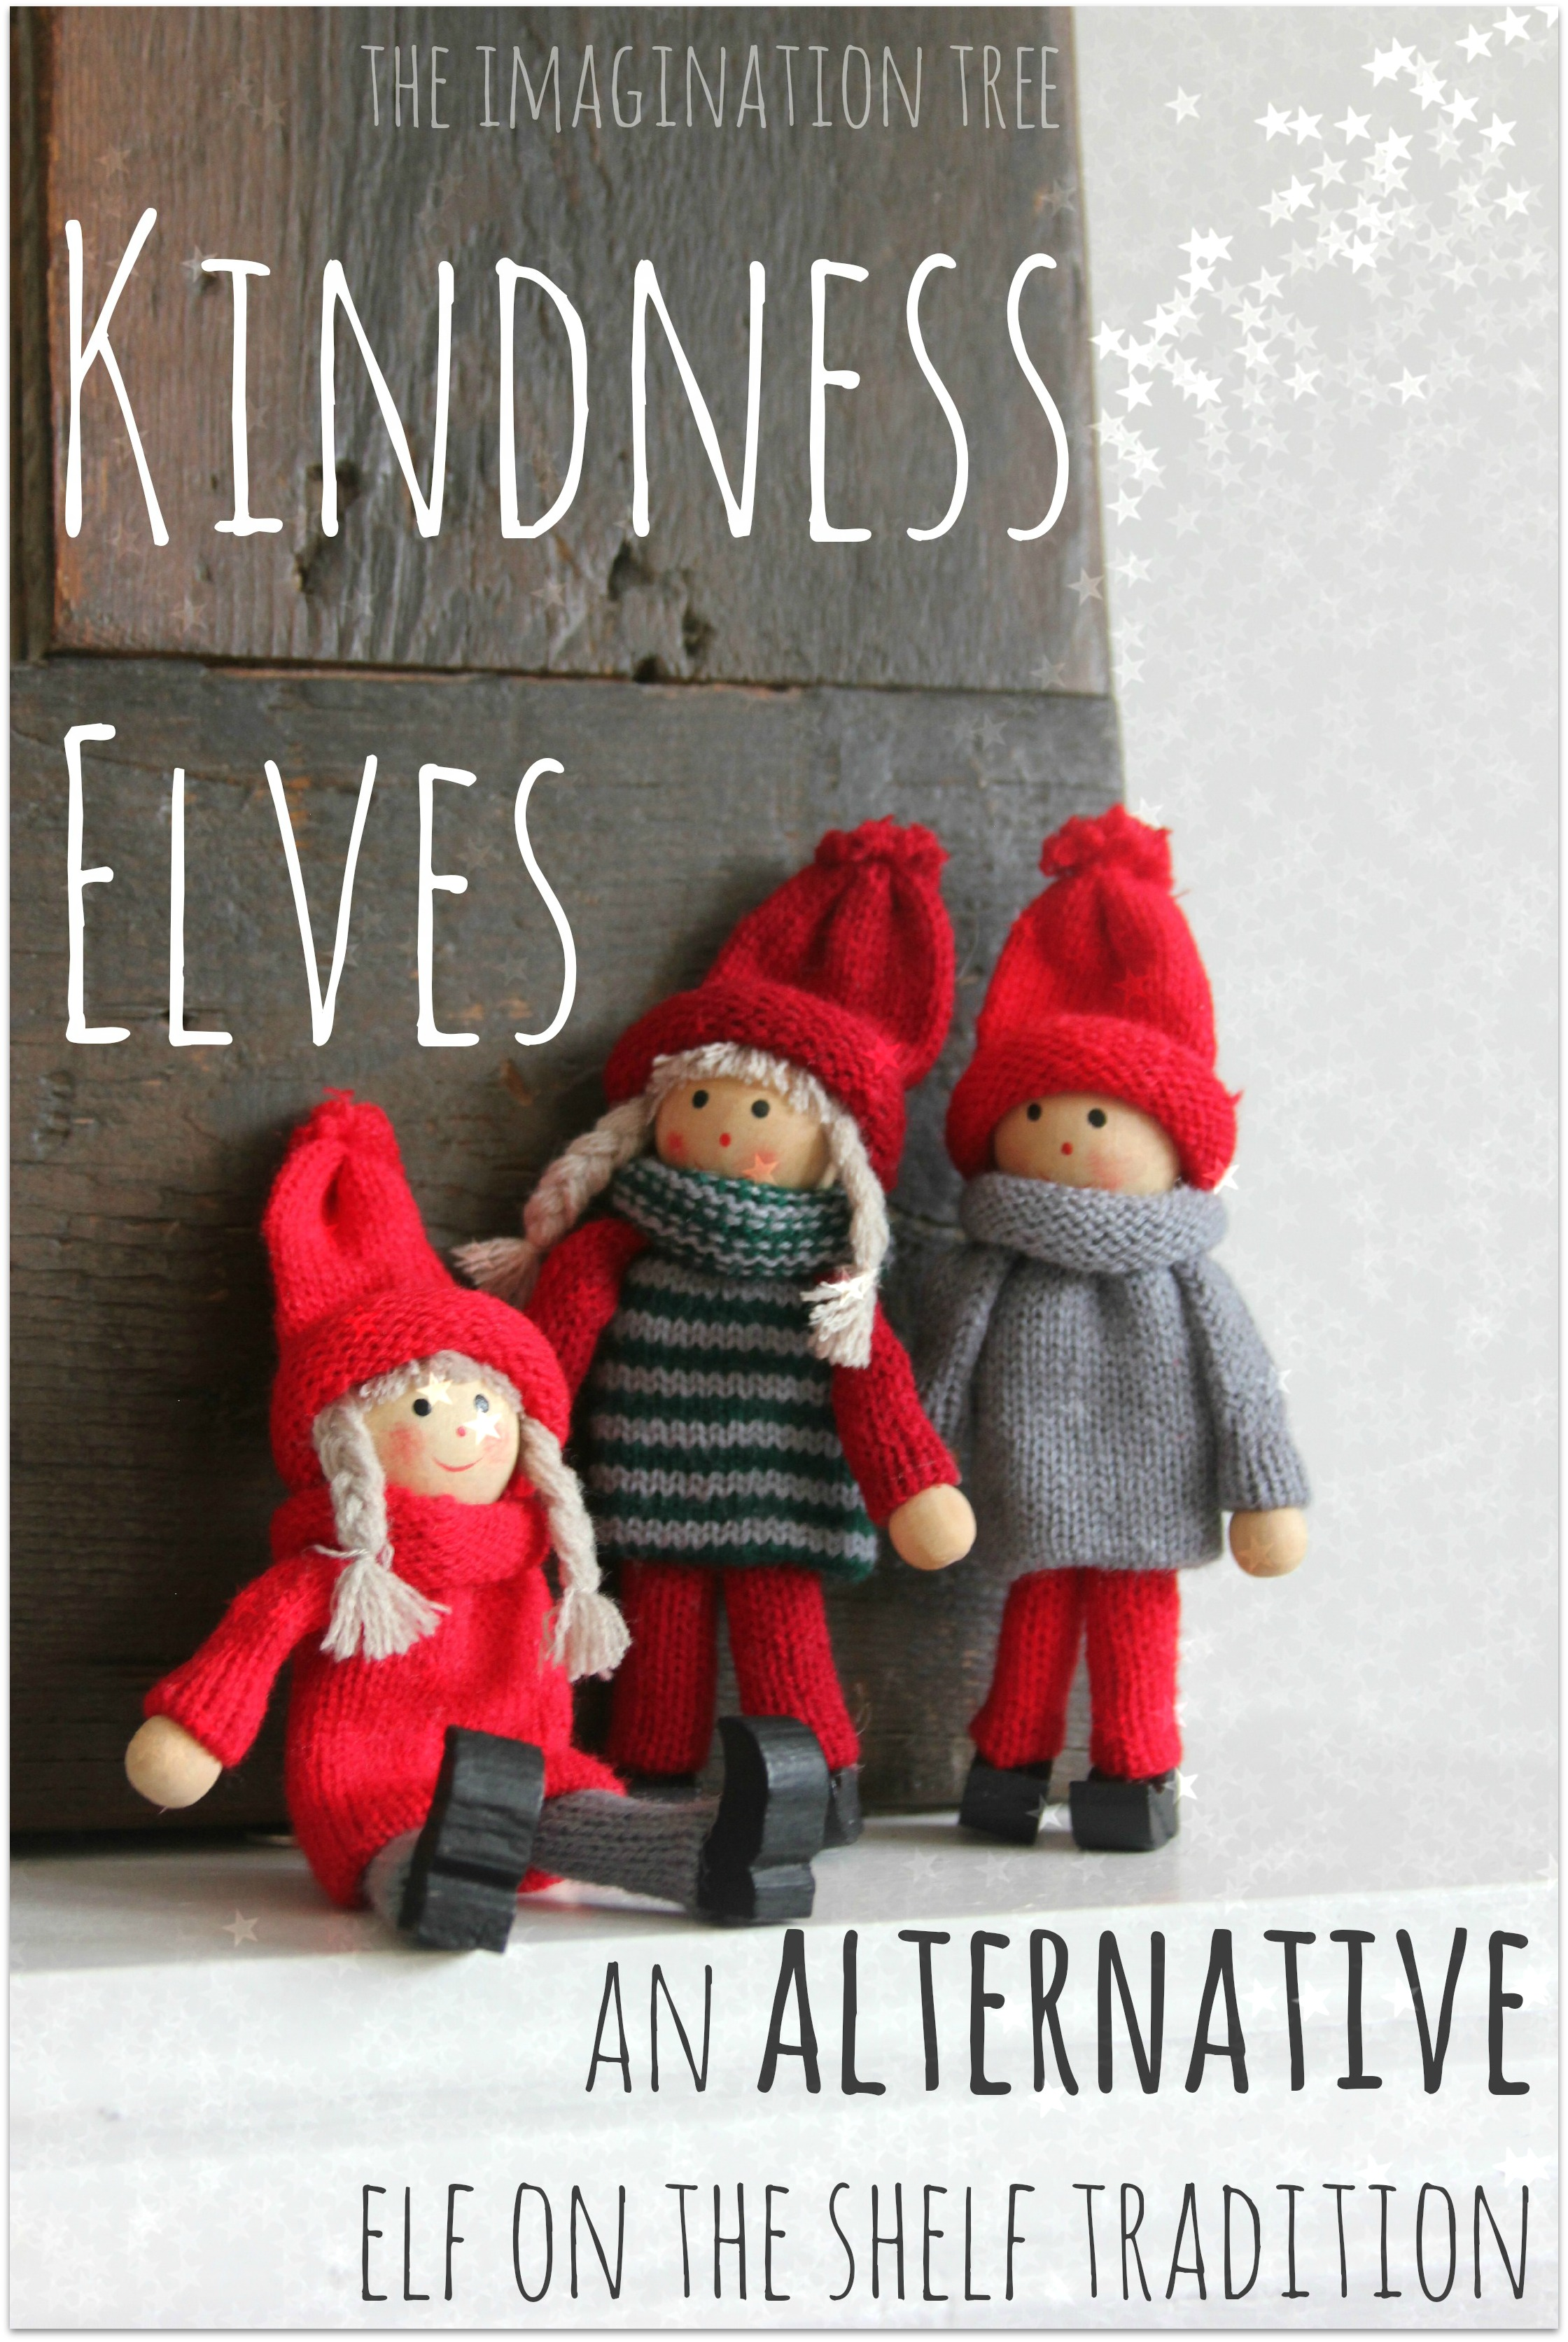 Kindness Elves An Alternative Elf On The Shelf Tradition The